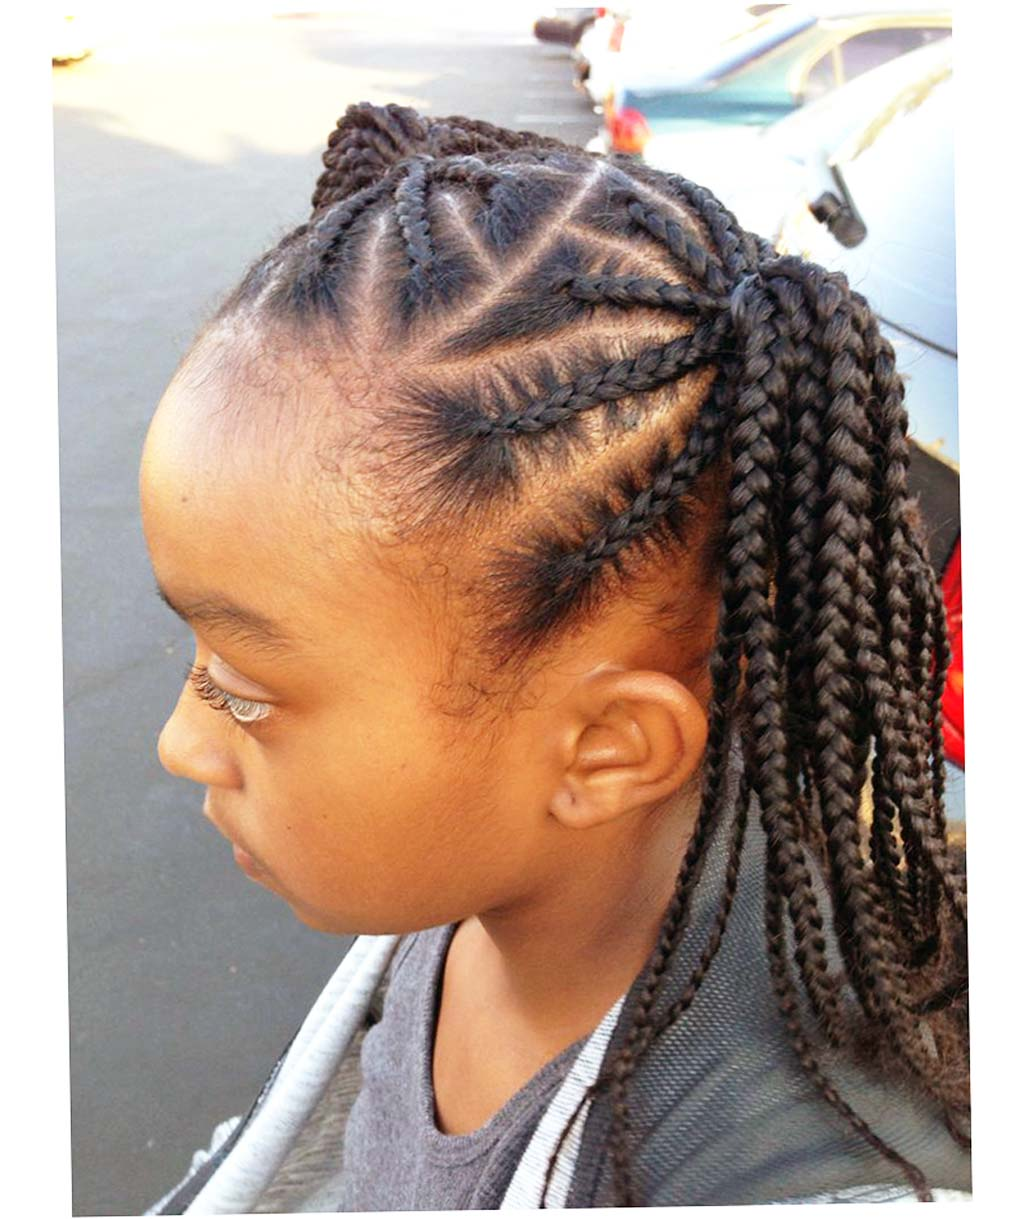 Kids Haircuts Huntsville Al Image Collections Haircuts For Men And